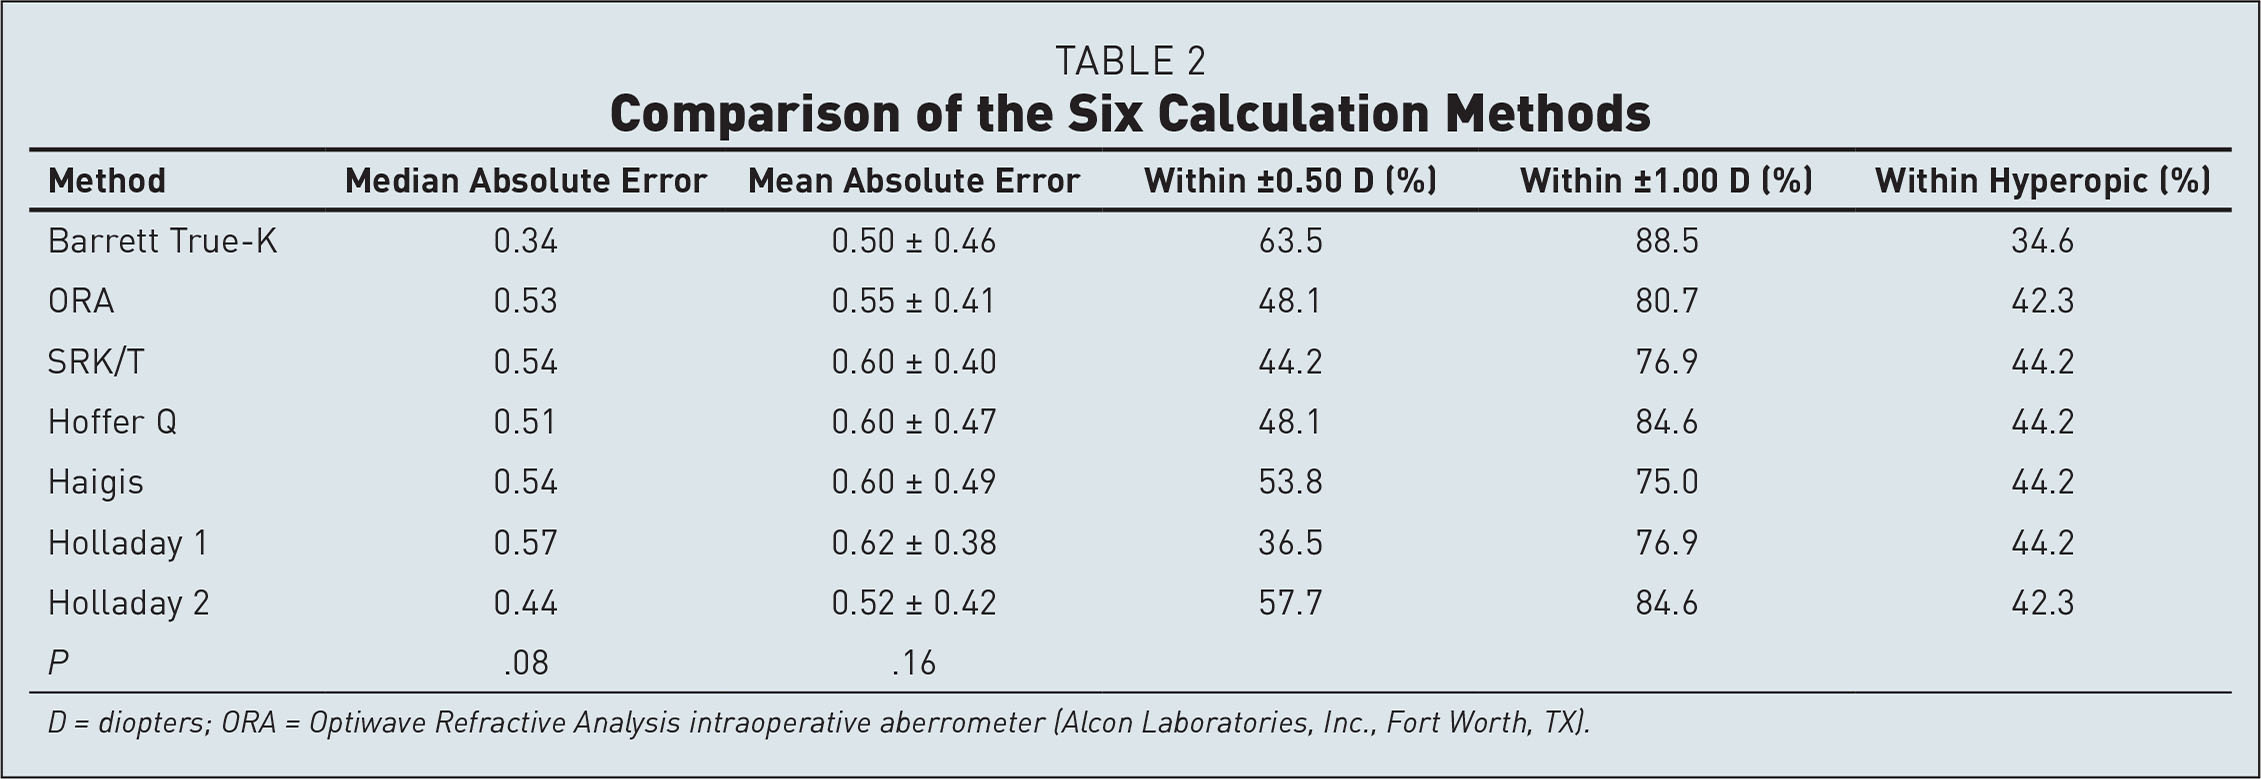 Comparison of the Six Calculation Methods